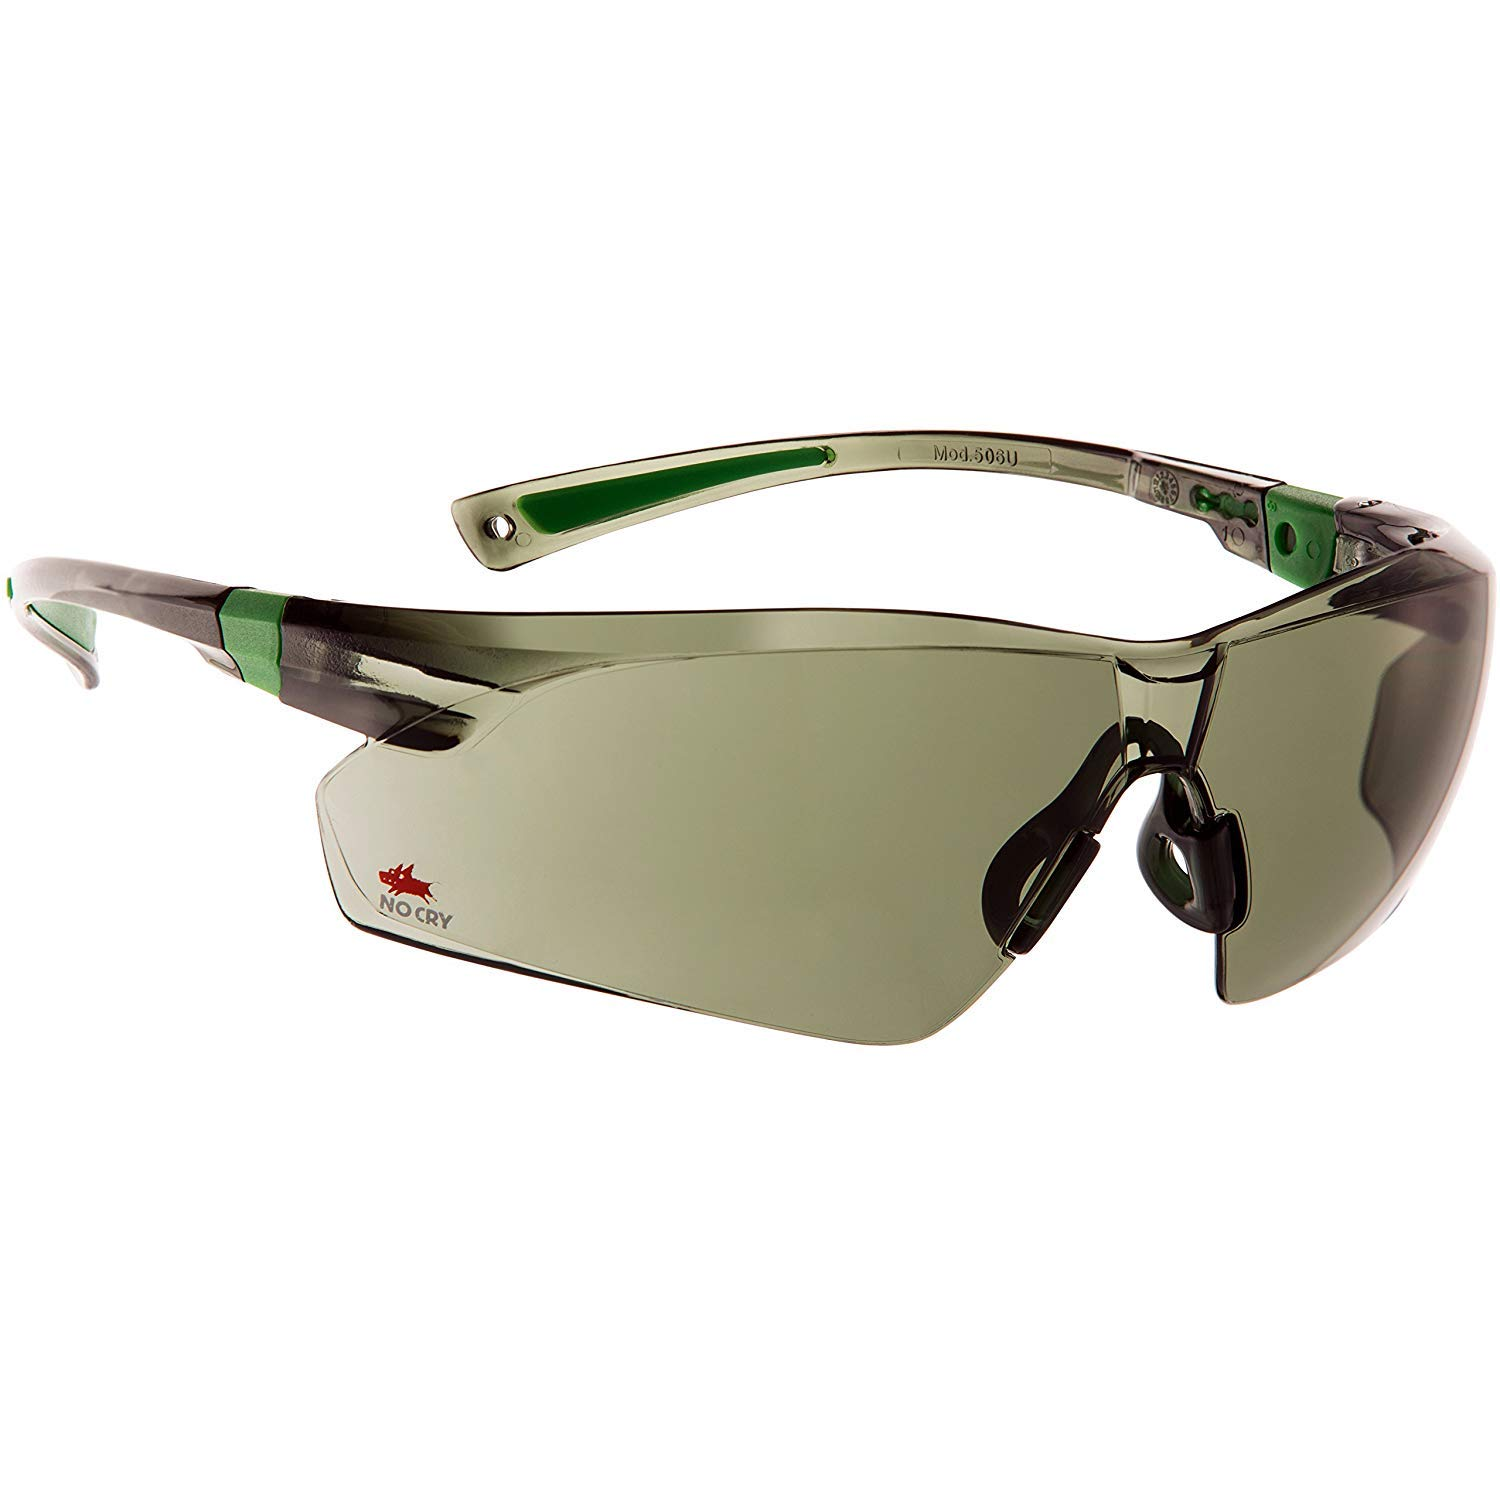 NoCry Work and Sport Safety Sunglasses with Green Tinted Scratch Resistant Wrap-Around Lenses and No-Slip Grips, UV 400 Protection. Adjustable, Black & Green Frames 506UGT